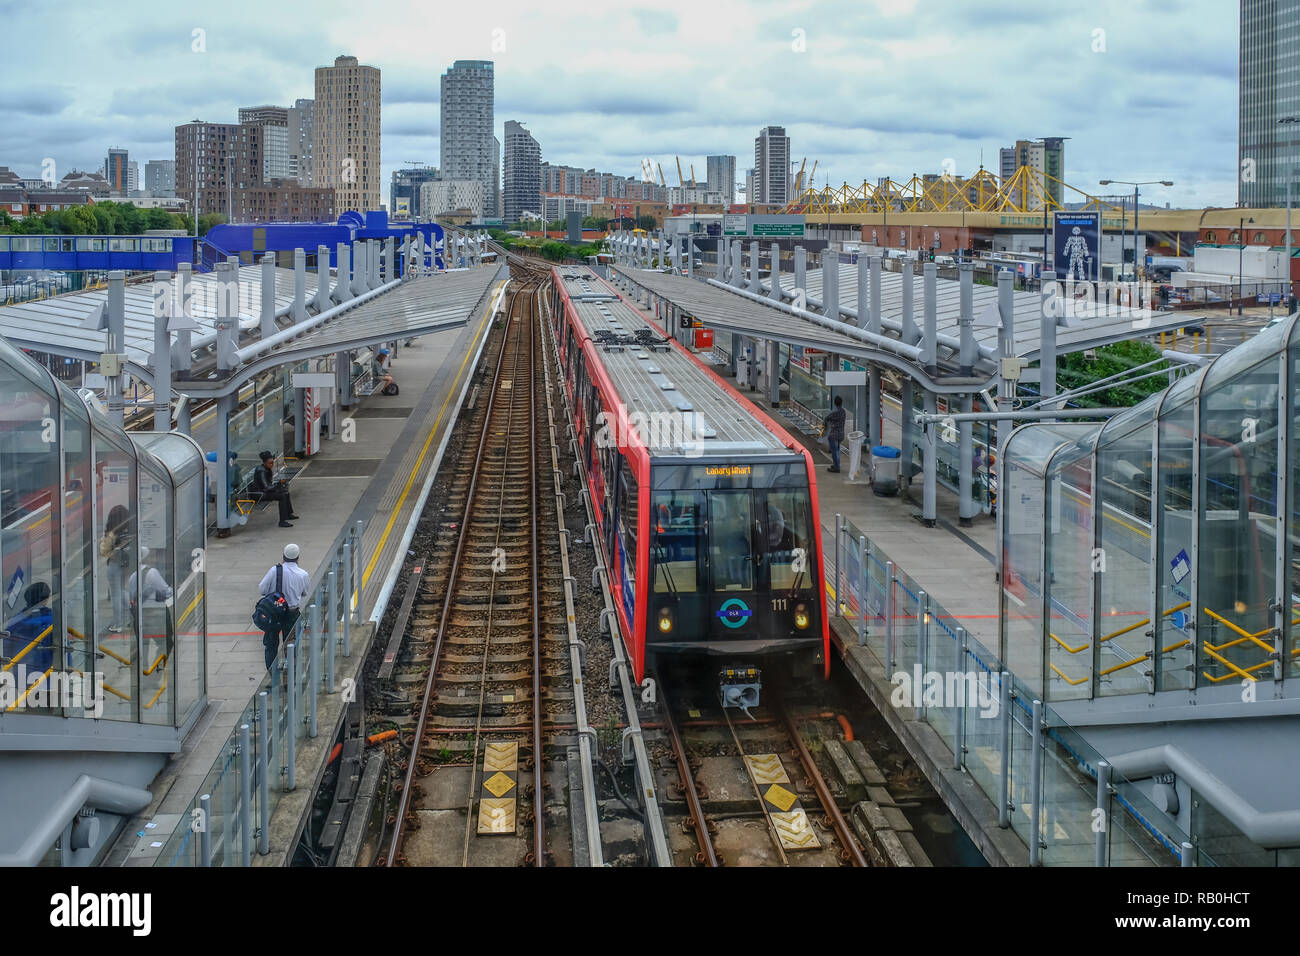 Poplar, London, UK - August 18,l 2018: Poplar DLR train station.  View looking down towards a train that has just arrived. - Stock Image